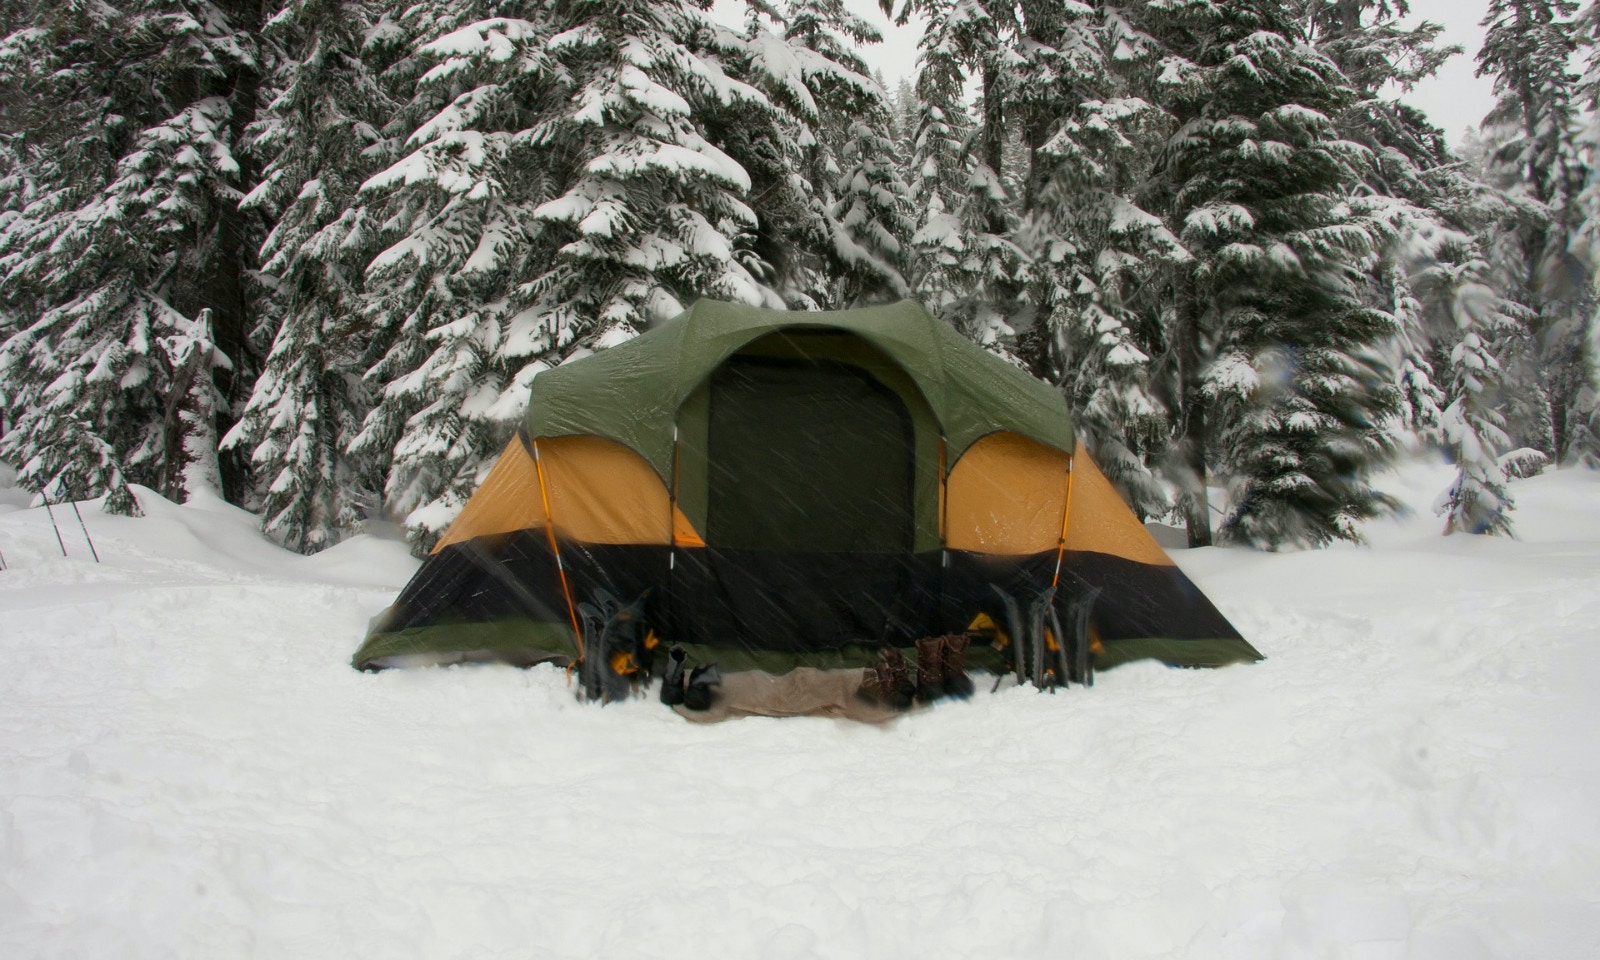 The Complete Winter Camping Checklist